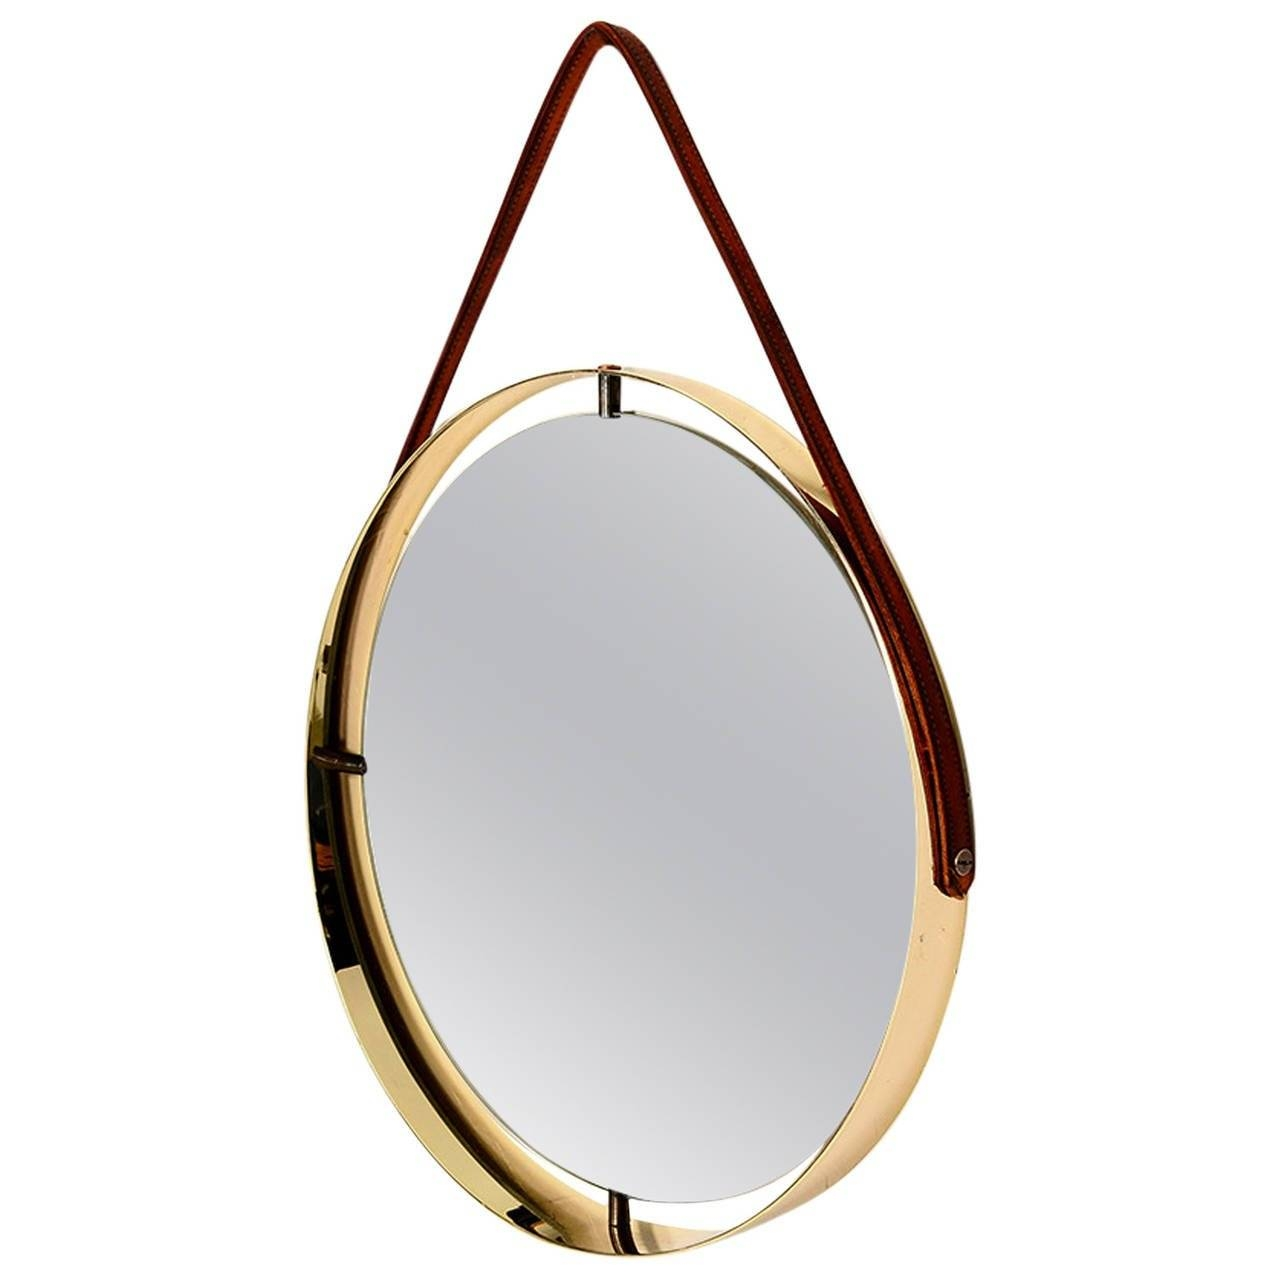 Round Mirror With Leather Strap For Sale At 1Stdibs With Regard To Large Leather Mirrors (View 15 of 15)